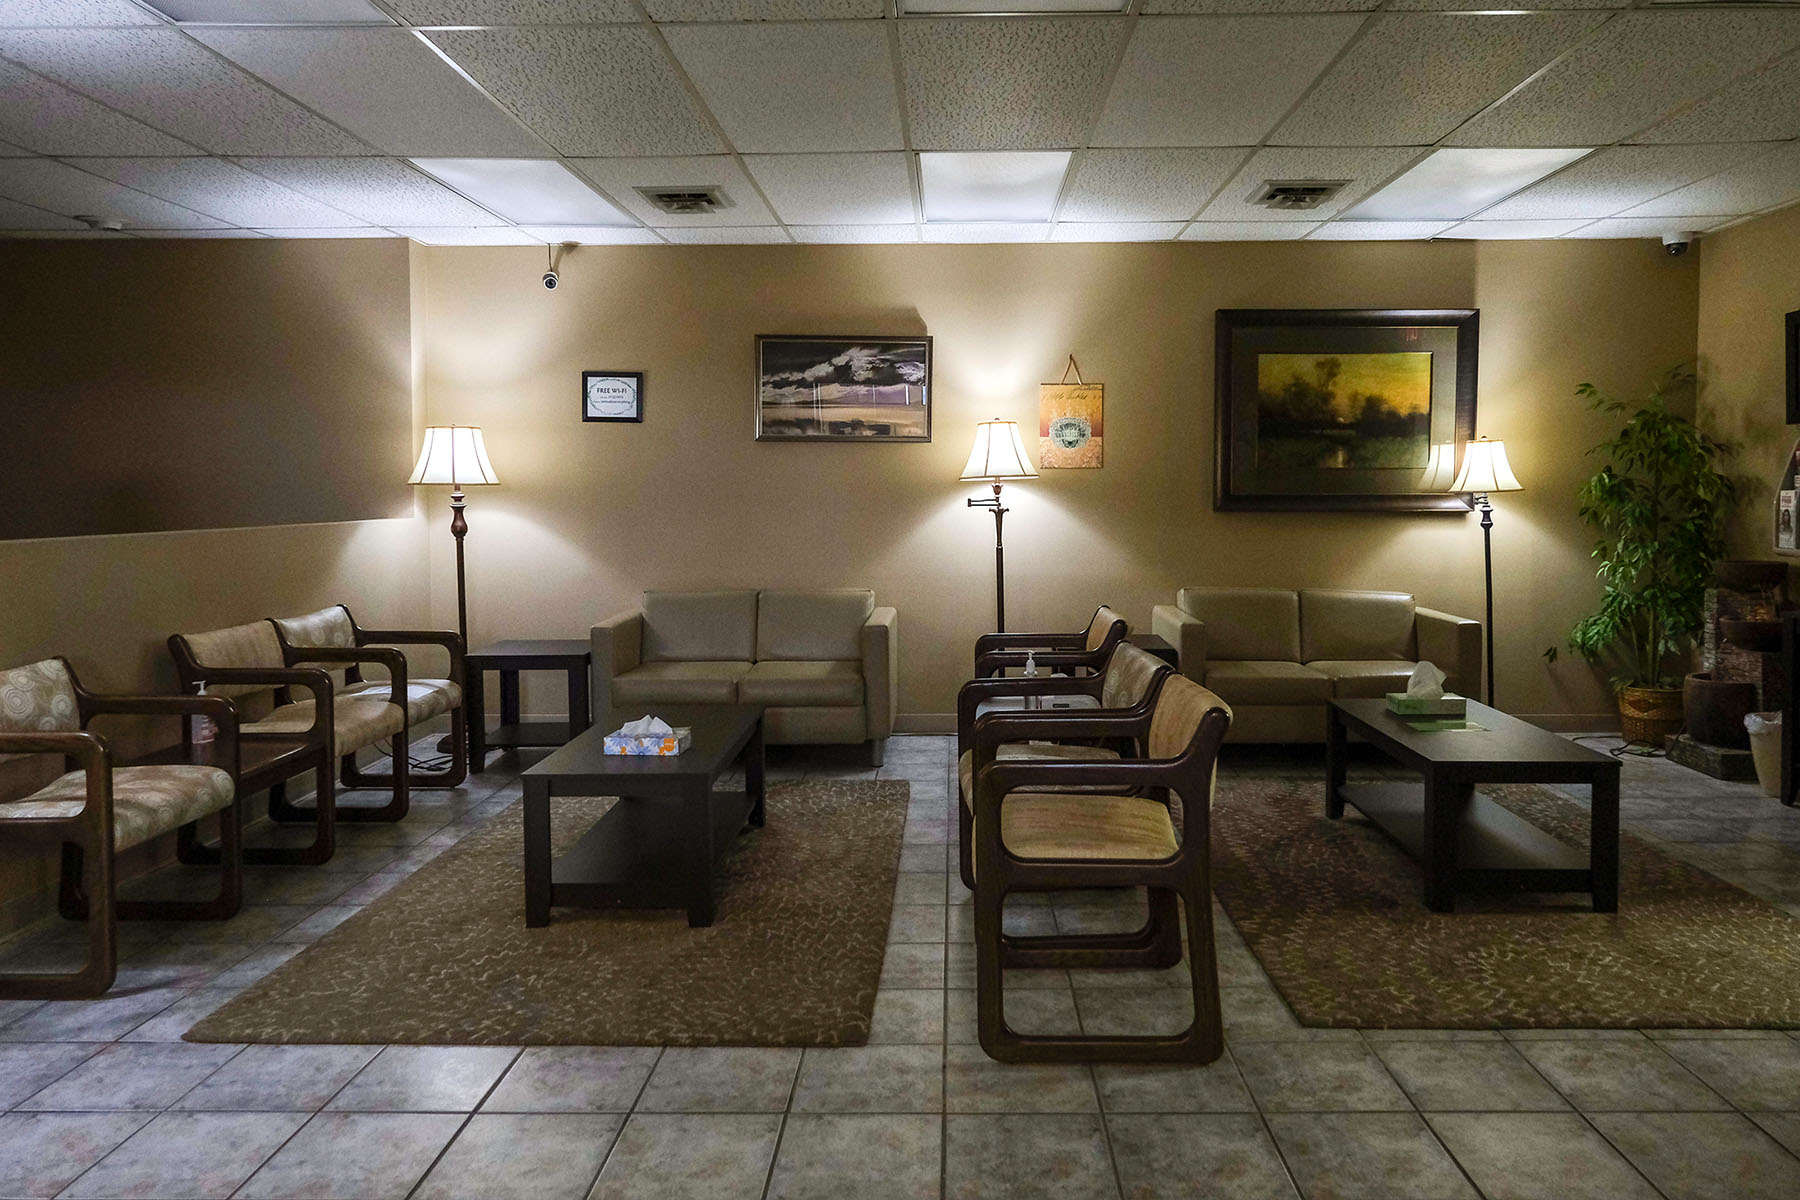 A tidy waiting room is seen at Trust Women: pictures are hung up on the wall and plants adorn the corners.